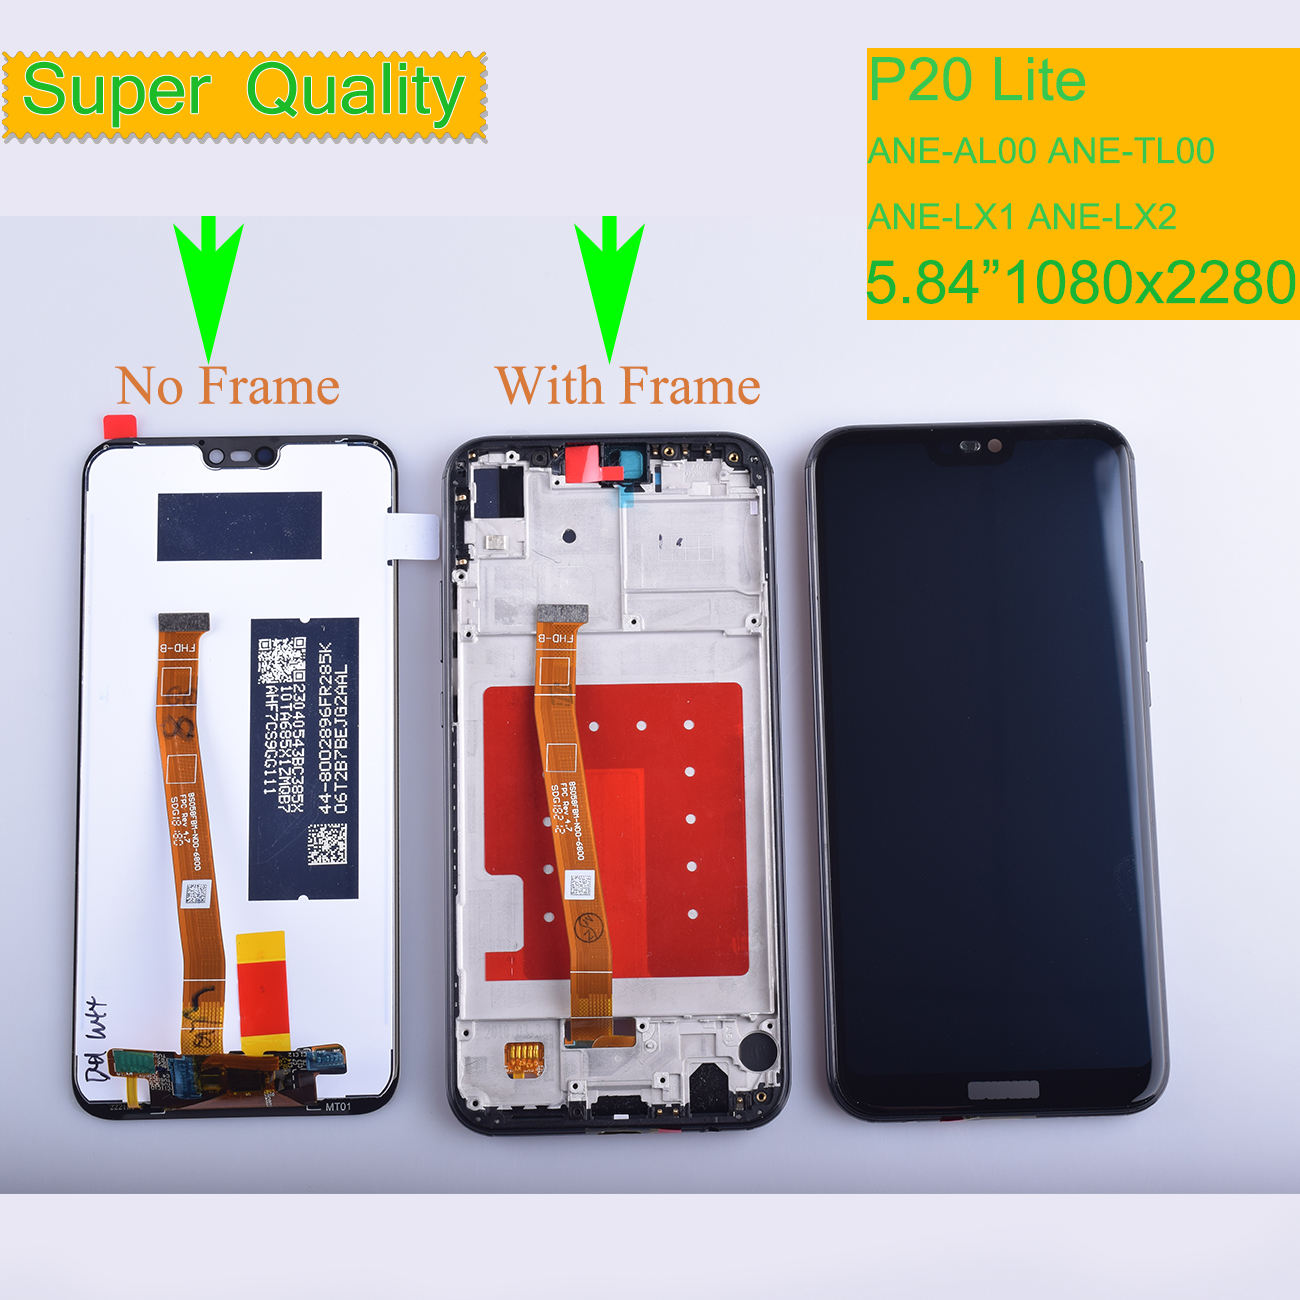 ORIGINAL LCD With Frame For HUAWEI P20 Lite Lcd Display Screen For HUAWEI P20 Lite ANE-LX1 ANE-LX3 Nova 3e LCD AssemblyORIGINAL LCD With Frame For HUAWEI P20 Lite Lcd Display Screen For HUAWEI P20 Lite ANE-LX1 ANE-LX3 Nova 3e LCD Assembly